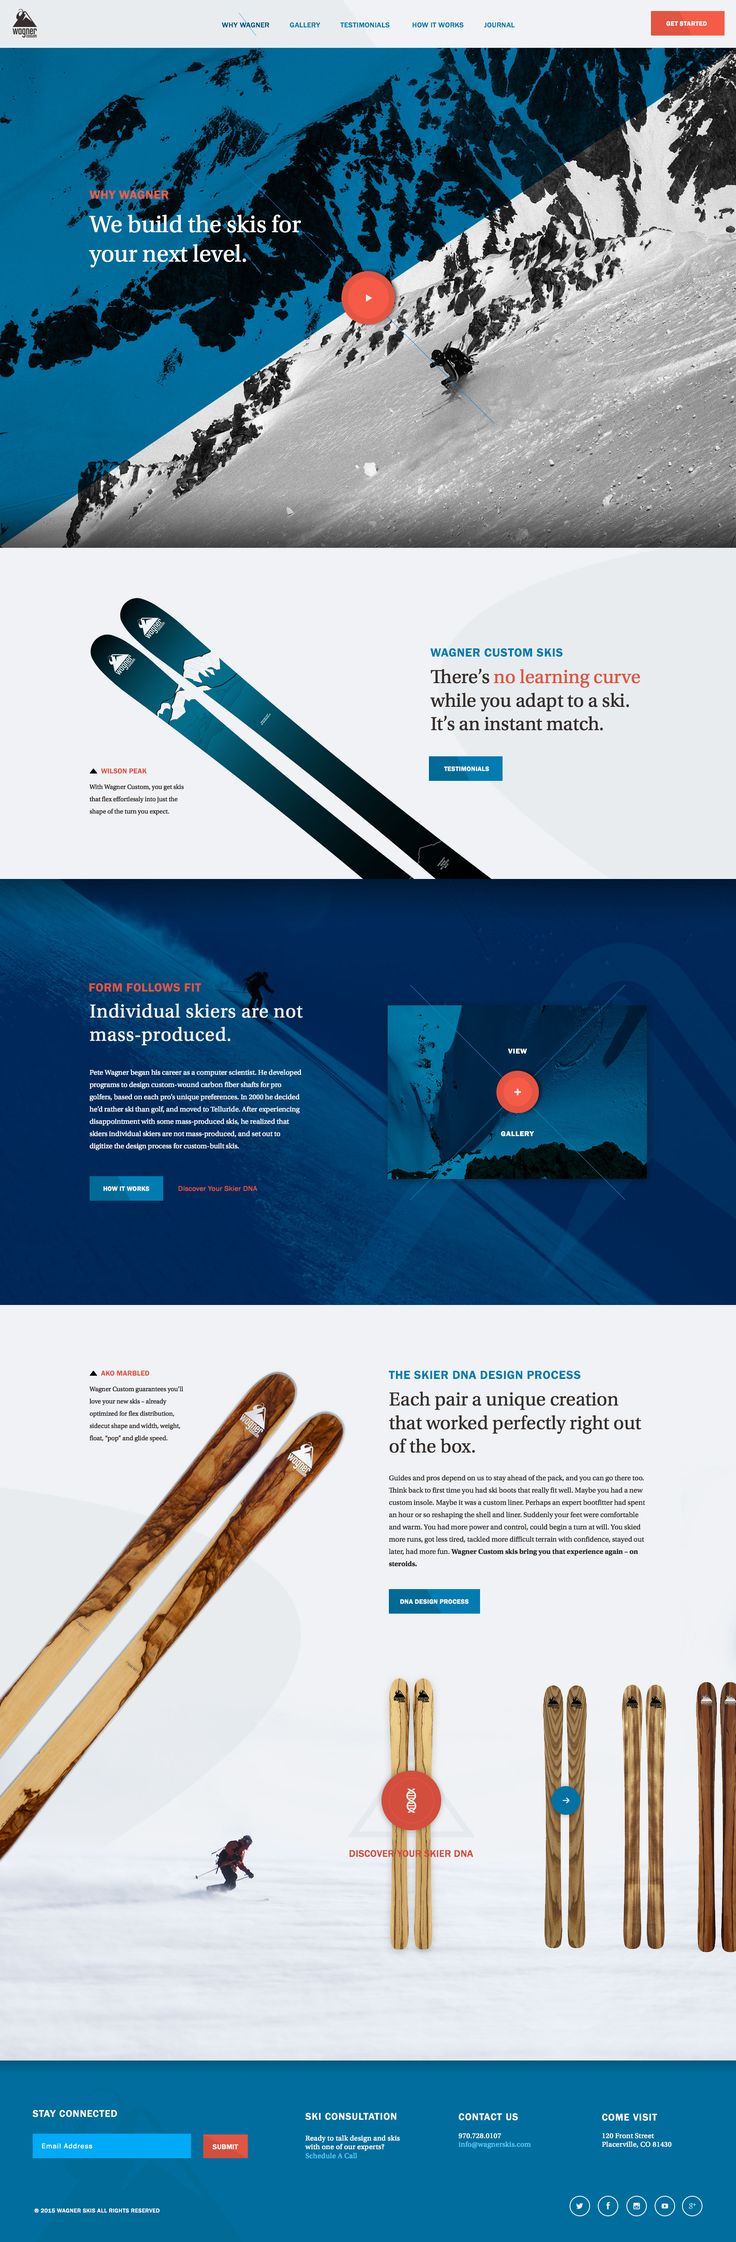 Skis for Your Next Level - Ui design concept and visual style, by Elegant Seagulls